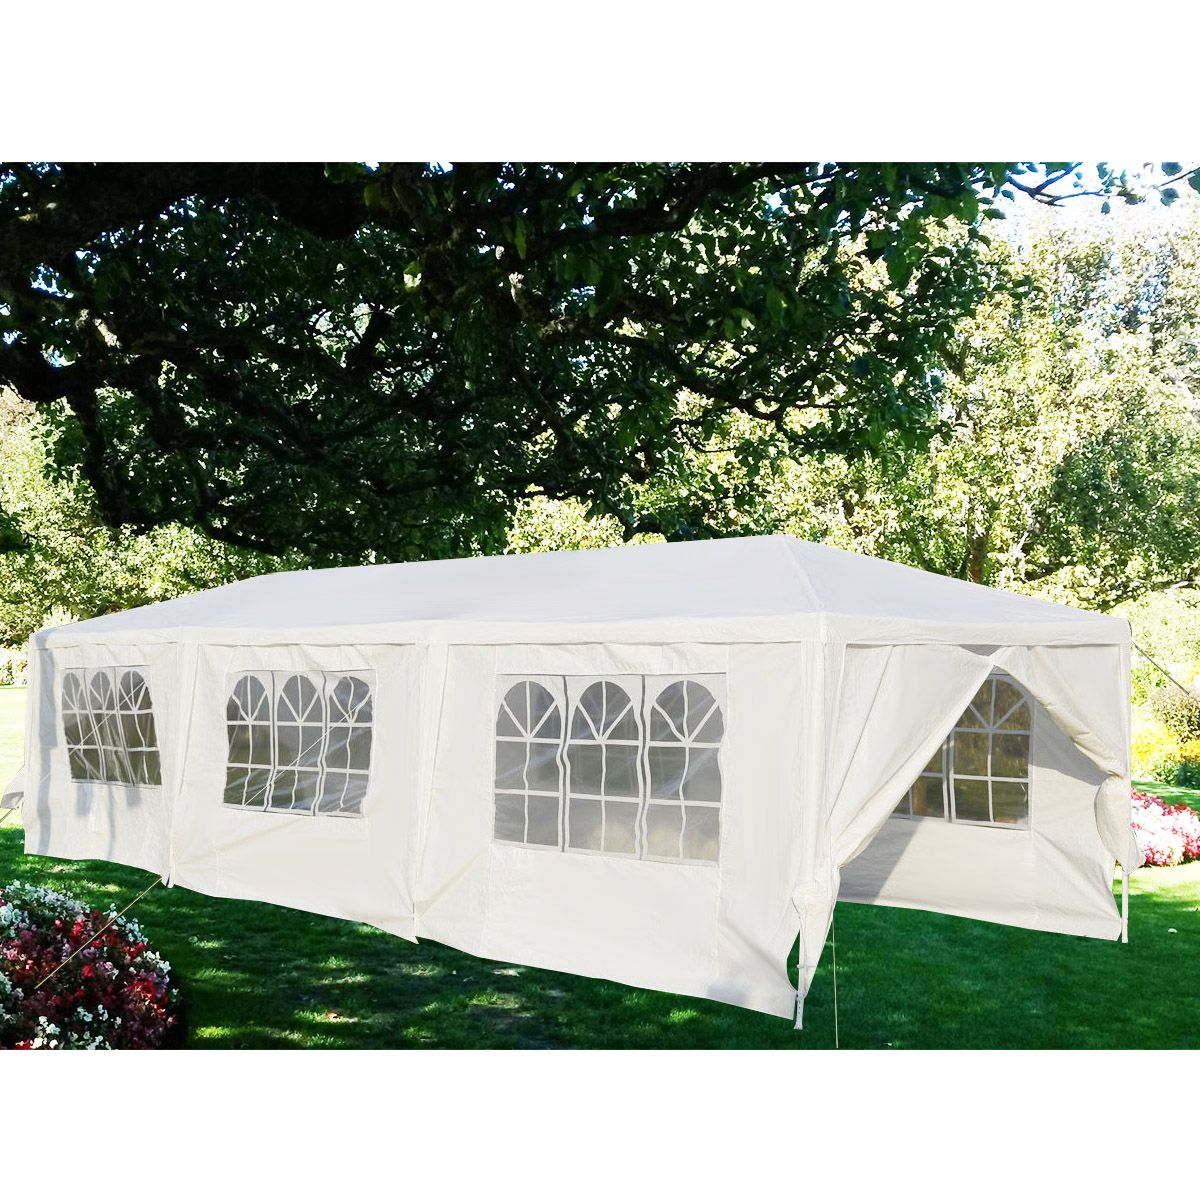 Gymax White Wedding Tent 10 X30 Outdoor Party Canopy Events Walmart Com White Canopy Tent Canopy Tent Outdoor Canopy Outdoor